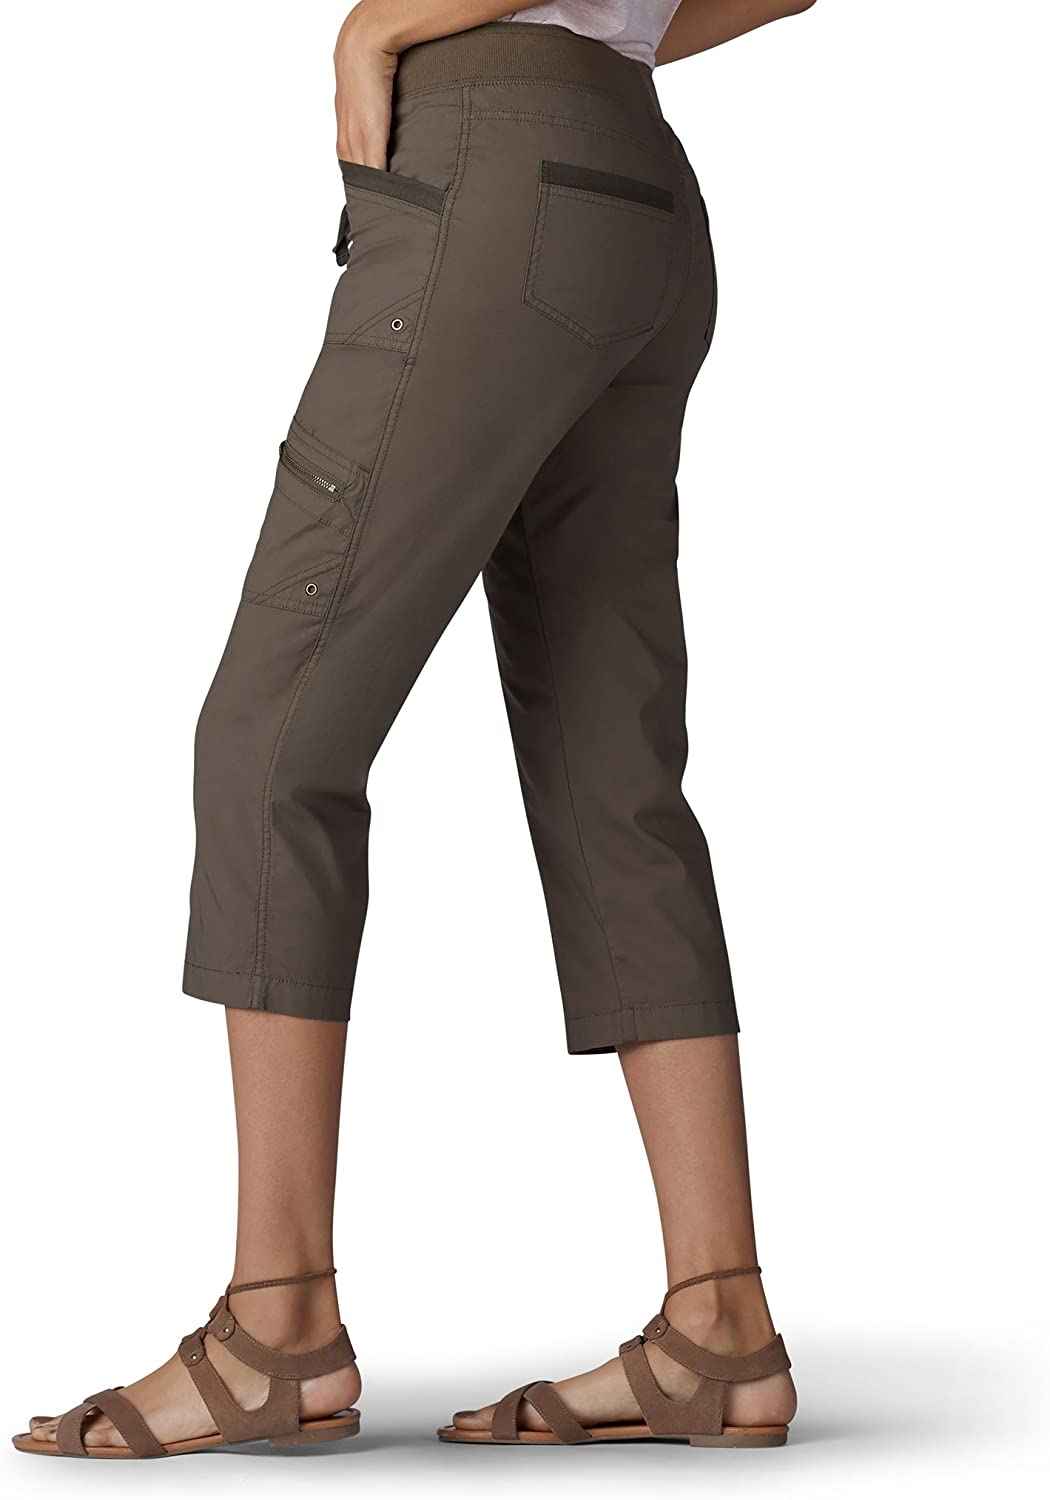 Lee Womens Relaxed Fit Margeaux Knit Waist Cargo Capri Pant Pants